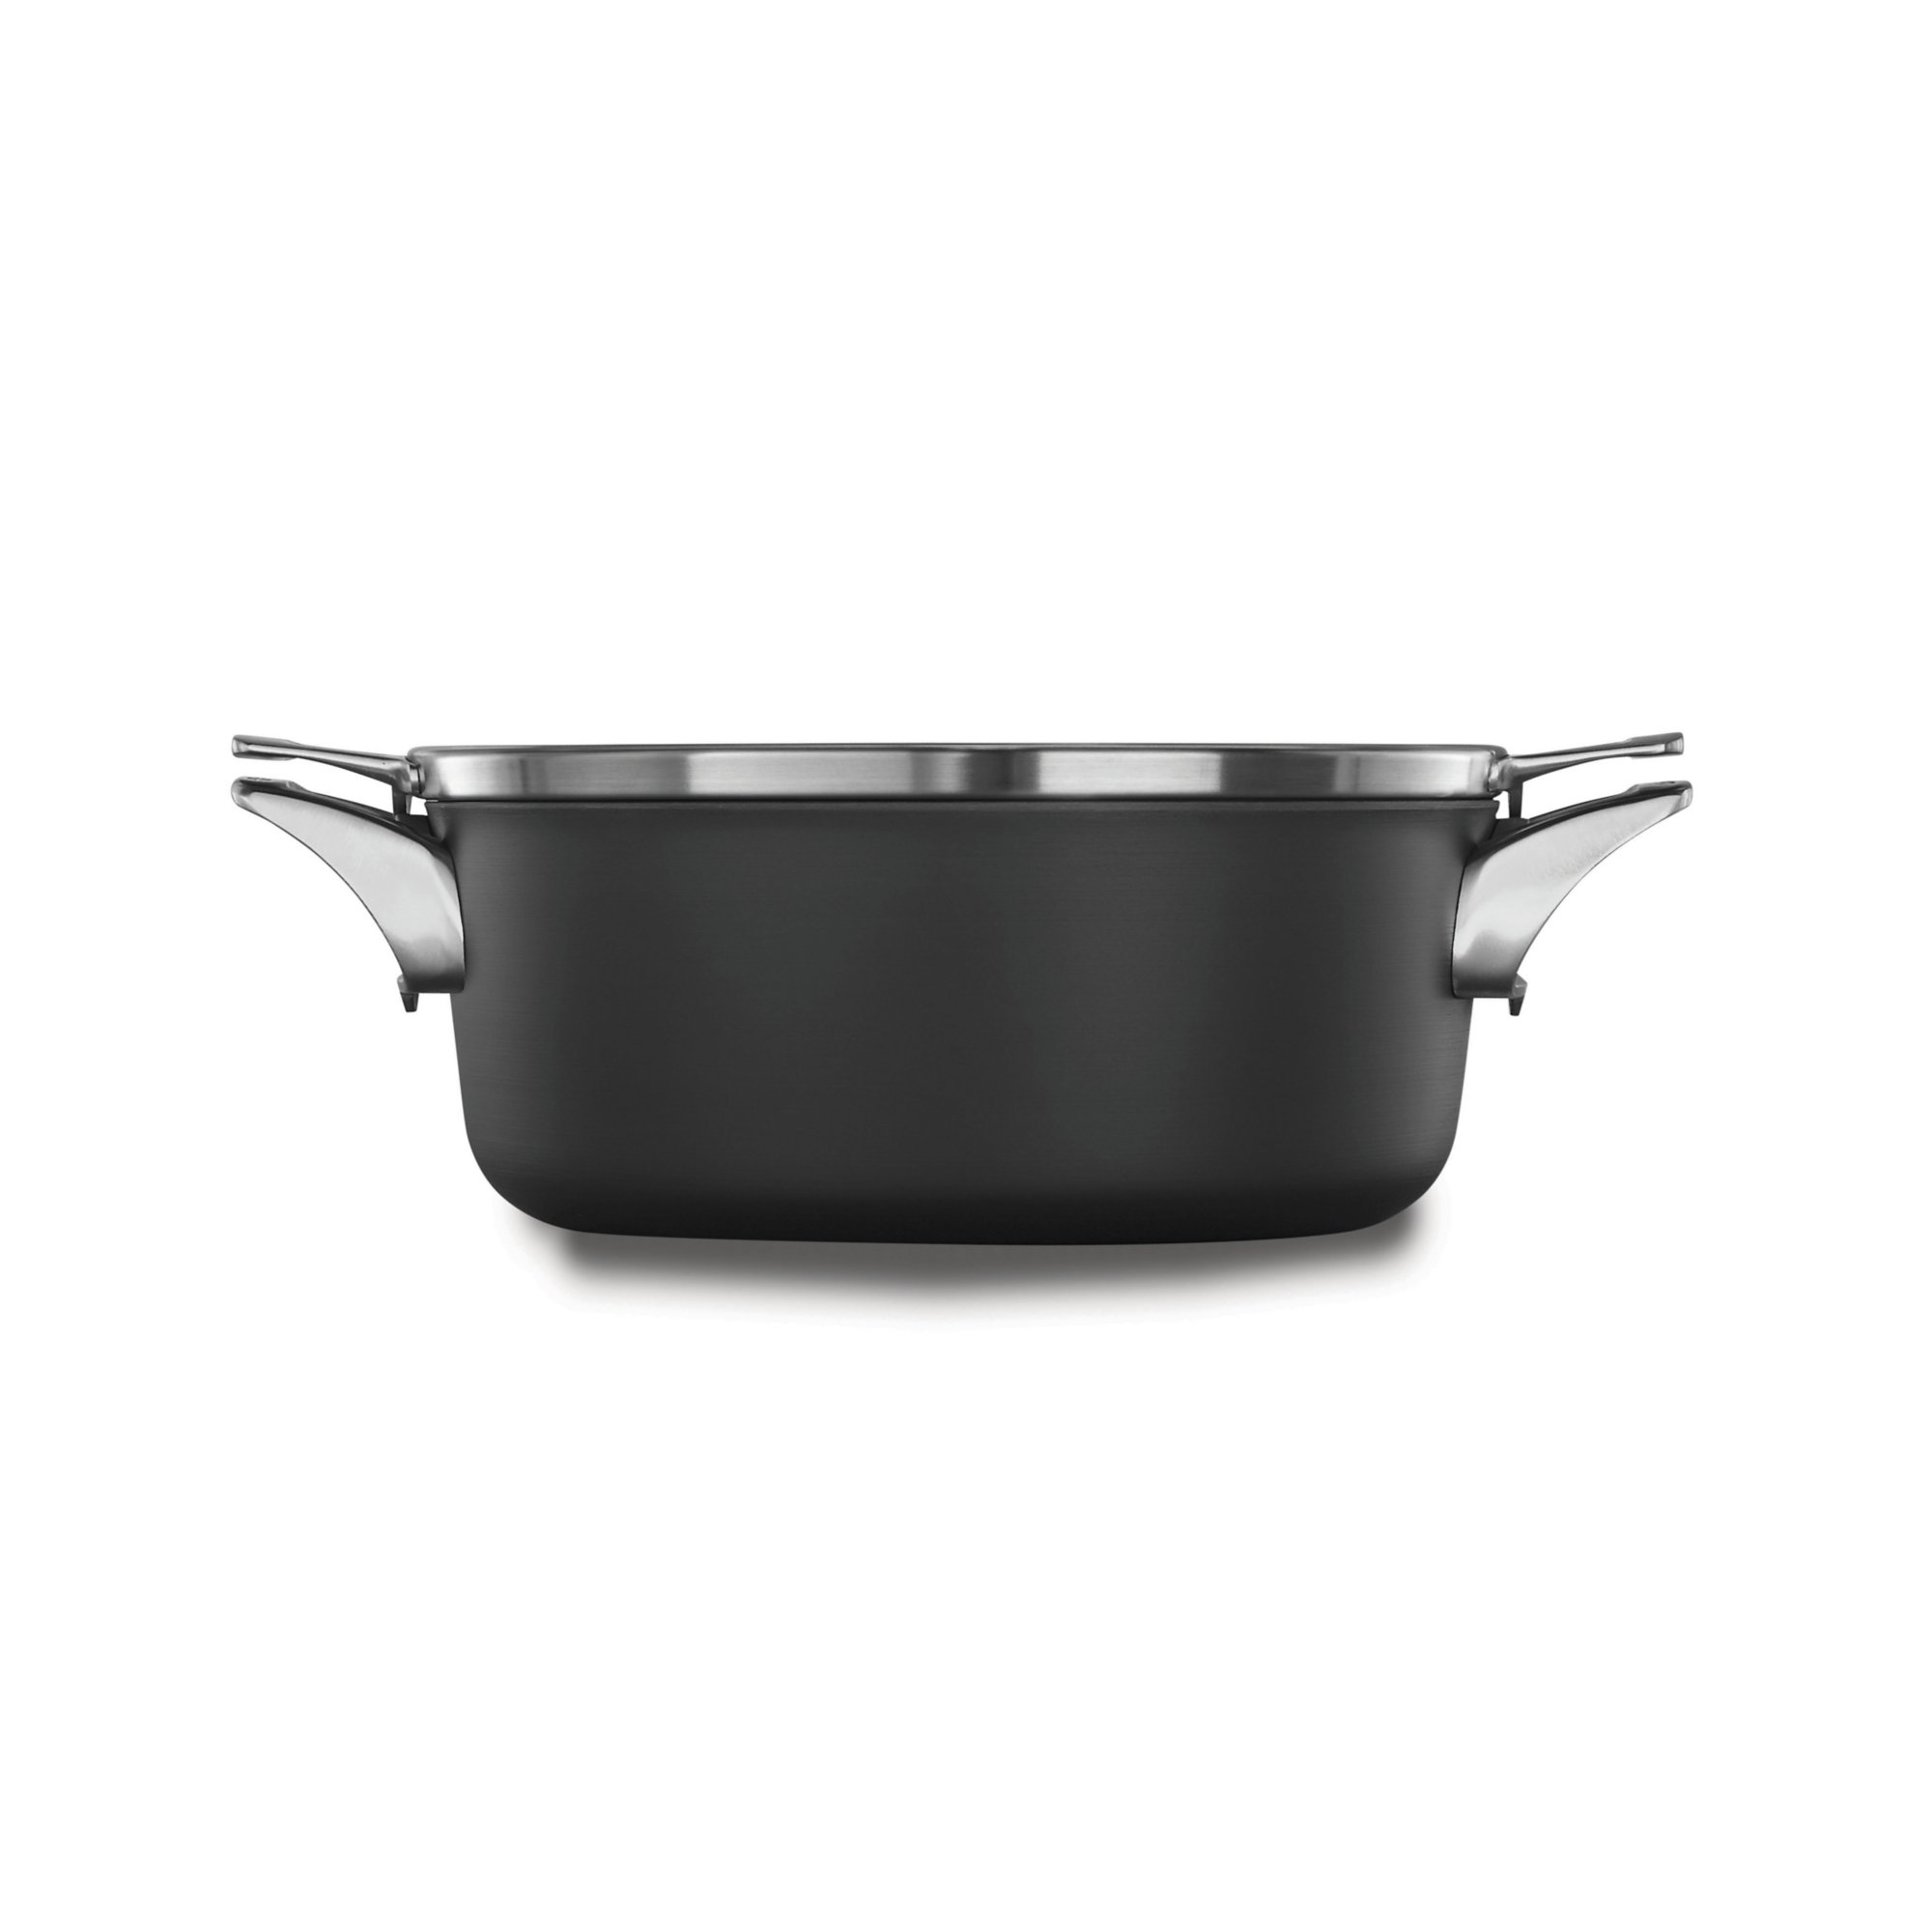 Calphalon Premier Space-Saving Hard-Anodized Nonstick Cookware, 5-Quart Dutch Oven with Cover